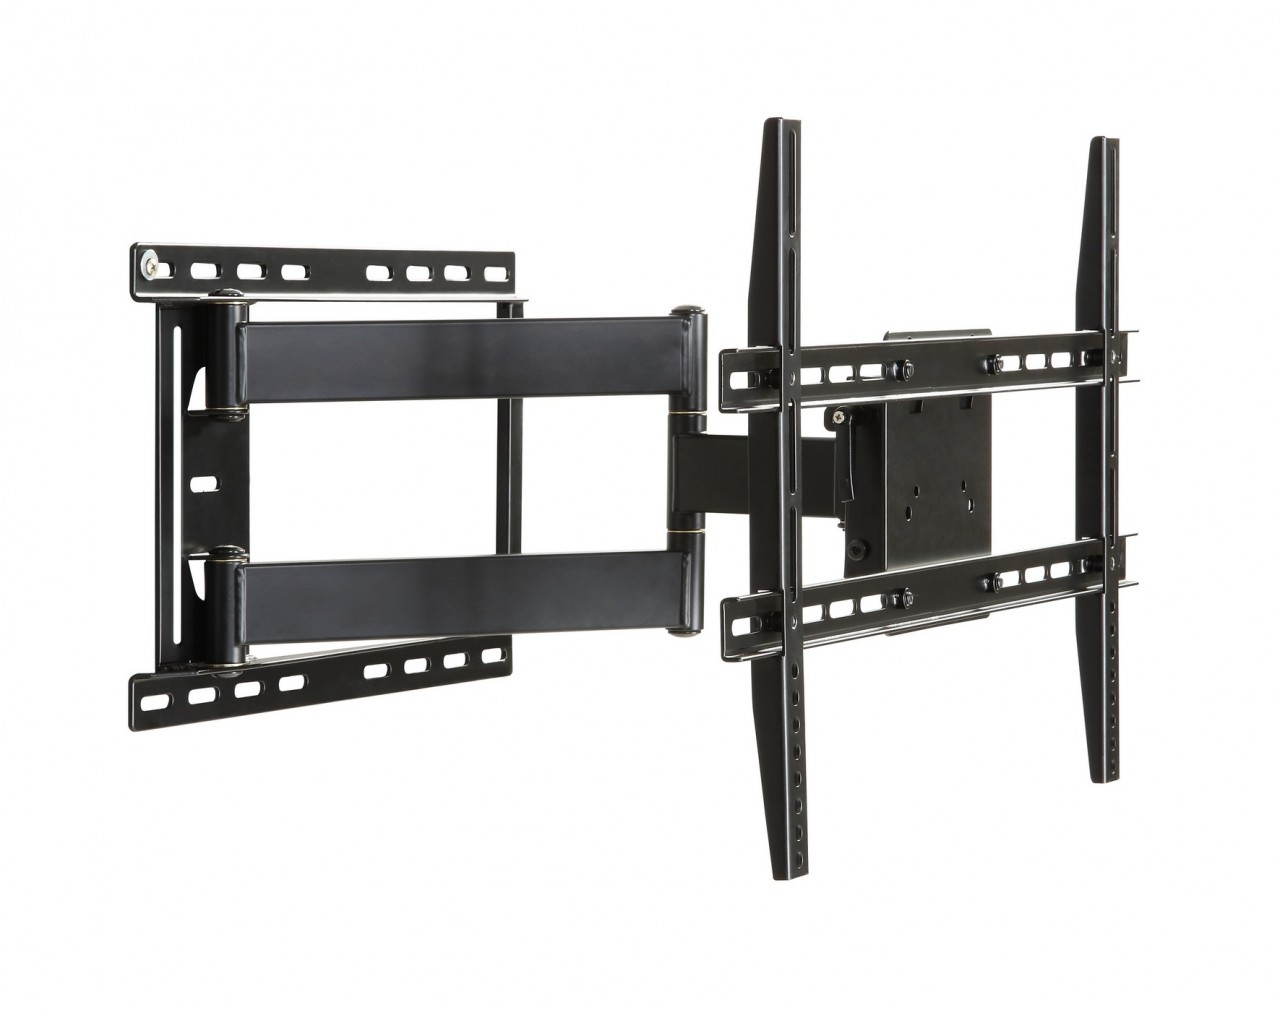 Amazing Design Of The Black Iron Frame To Hold The Tv On The Wall Ideas